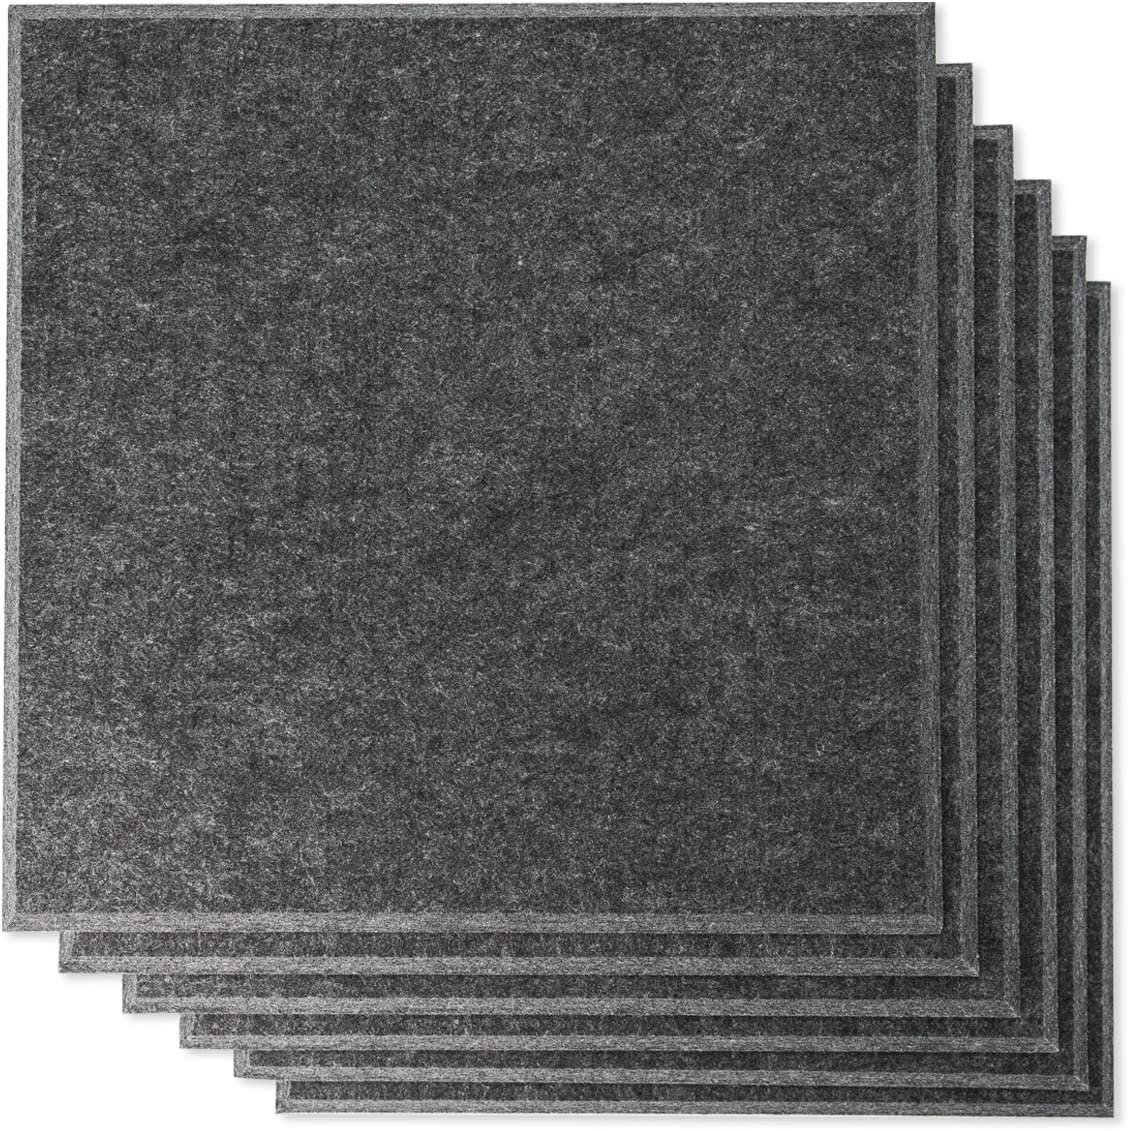 "Rhino Acoustic Absorption Panel 12"" x 12"" x 0.4"" NRC Sound Proof Padding for Echo Bass Isolation Dark Gray 6 Pieces Beveled Edge for Wall Decoration and Acoustic Treatment"